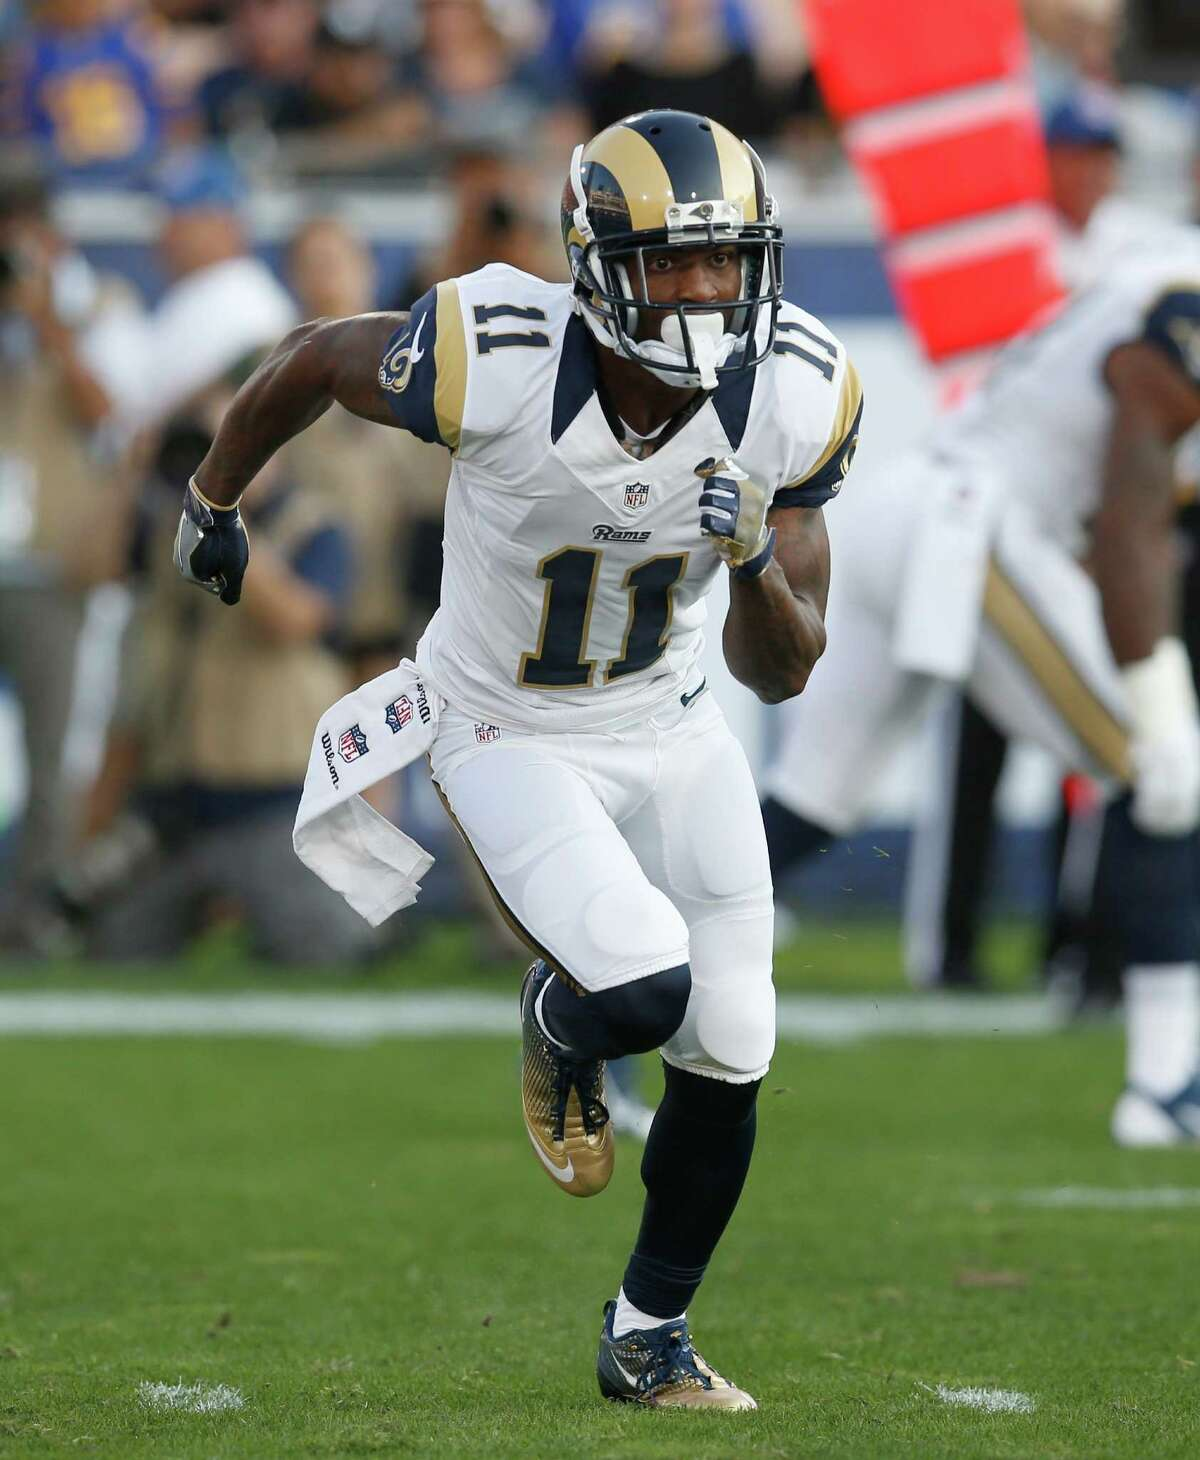 Tavon Austin, WR, Rams I'm opening myself up for ridicule with this one, but he totaled over 900 yards of offense and had nine touchdowns last season. He'll be nobody's first, second or even third option, but it looks like he finally started to find ways to contribute last year. The Rams will need to lean heavy on Todd Gurley and find ways to continue to get the ball into Austin's hands in a variety of ways. Going typically in the 11th round, you can afford to take a flyer on this guy.